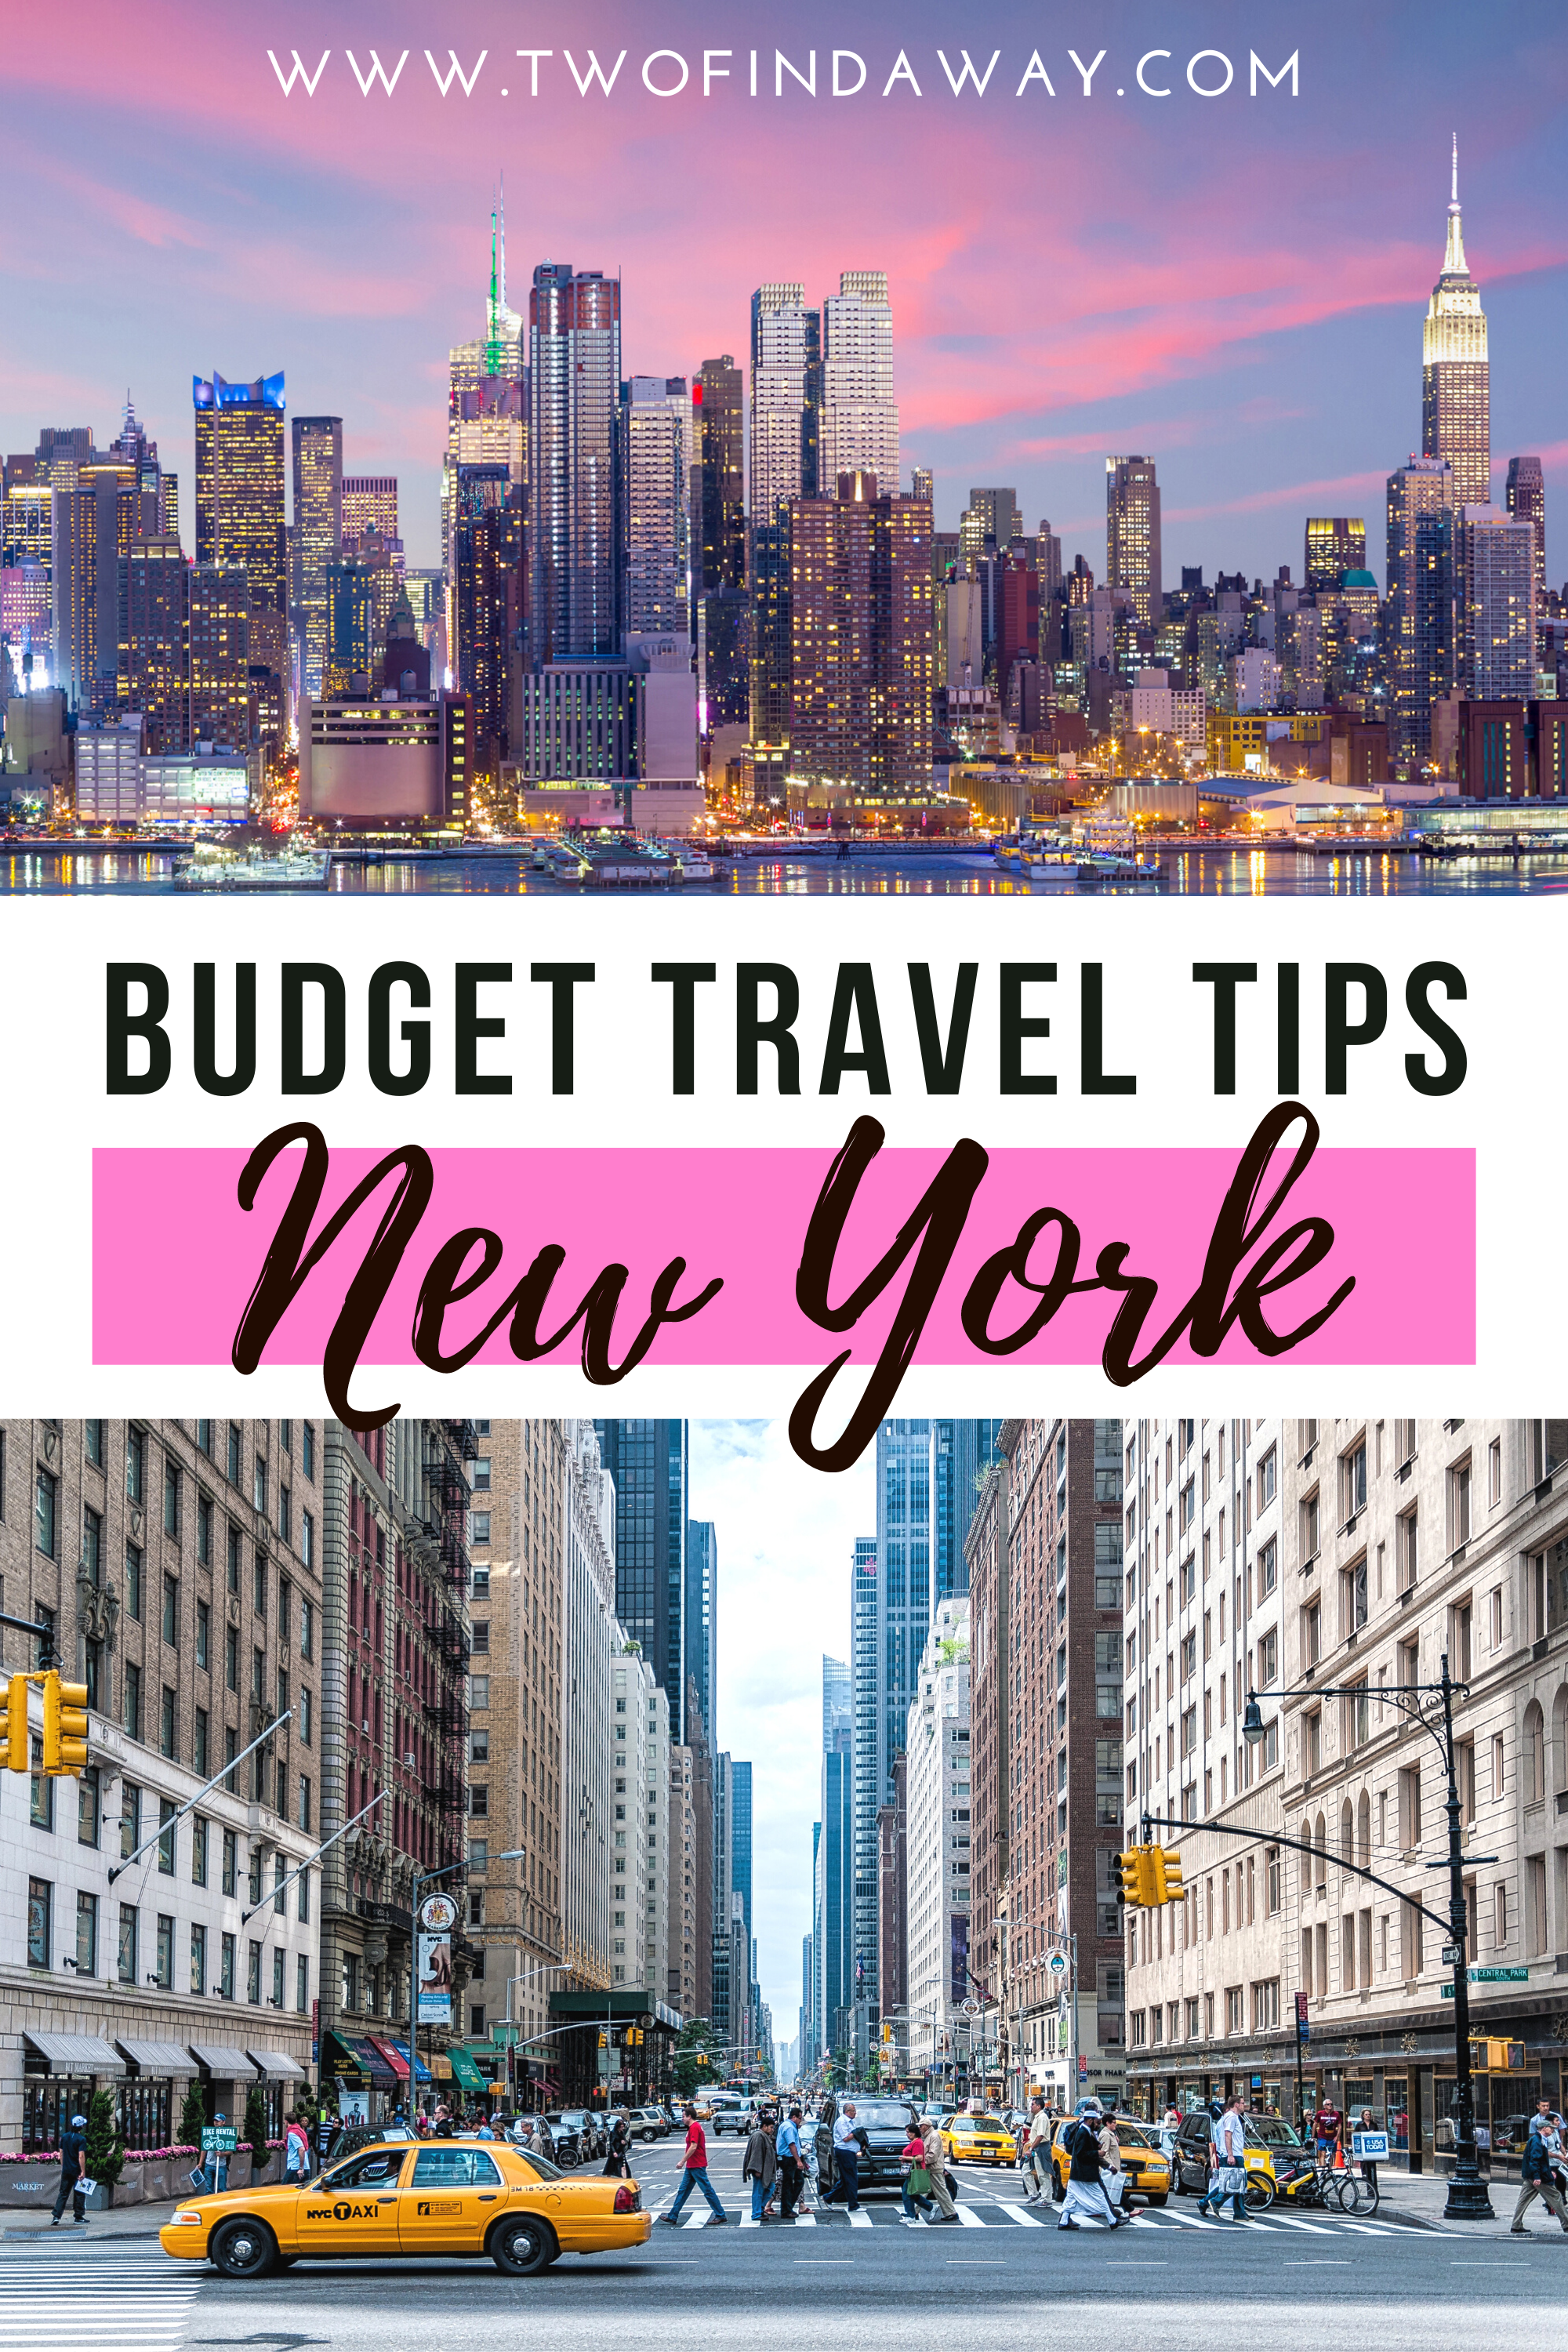 Budget Travel Tips for New York: How To Save in NY